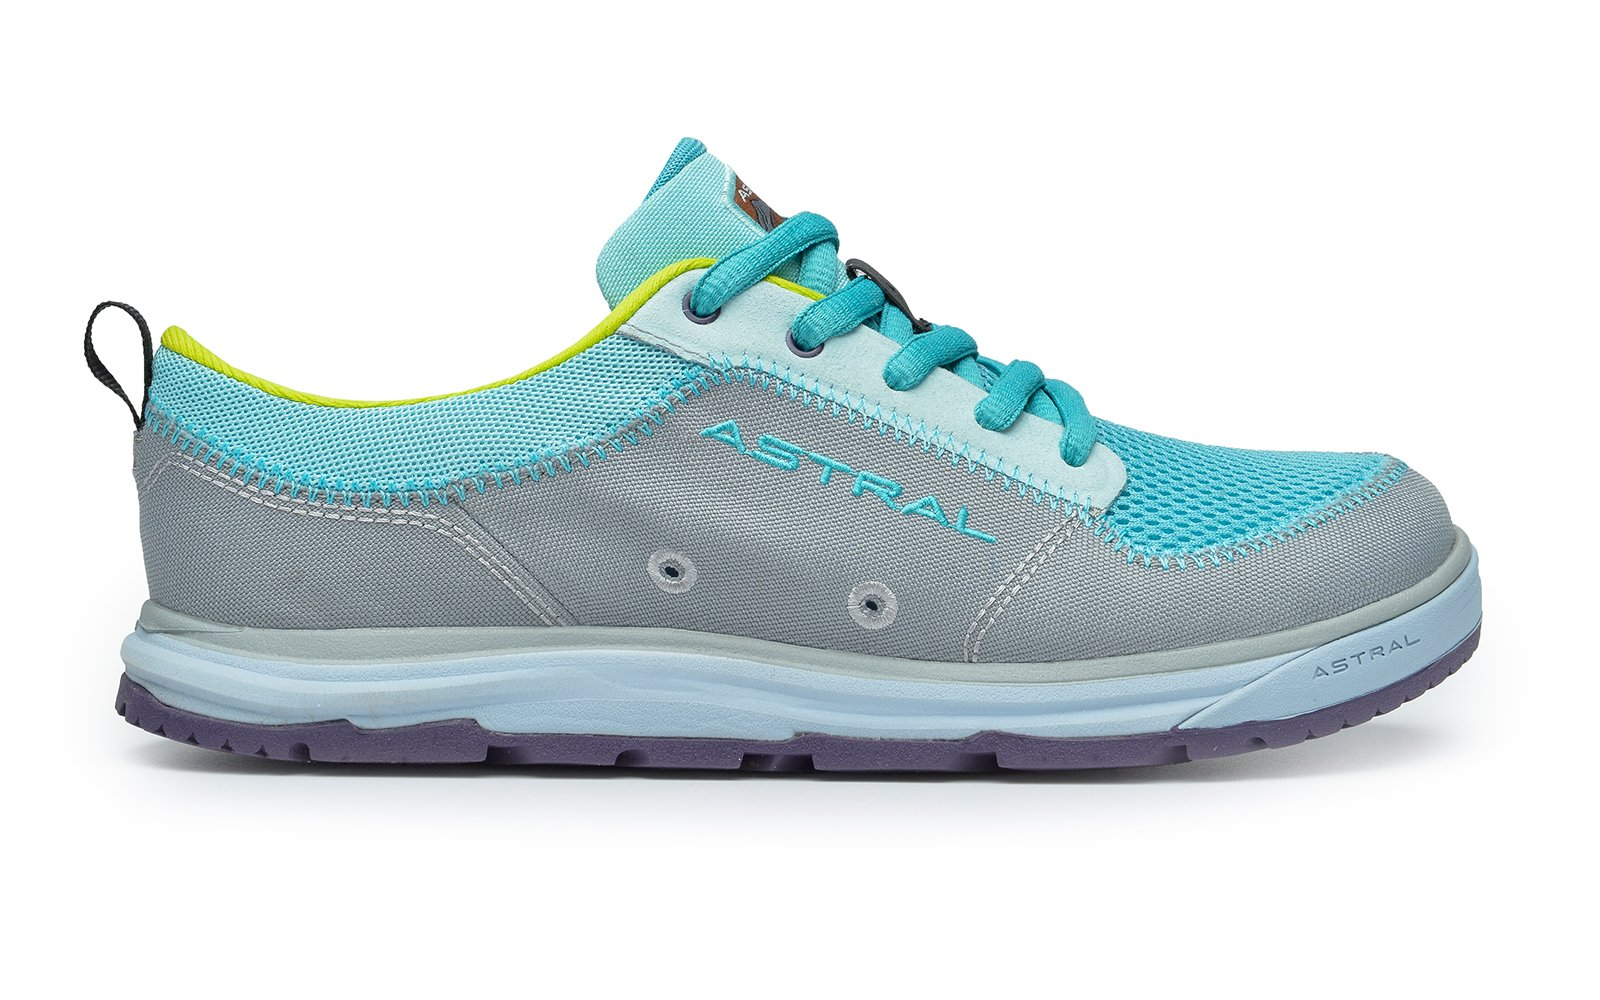 Astral Brewess 2.0 Women's Water Shoe - Turquoise Gray